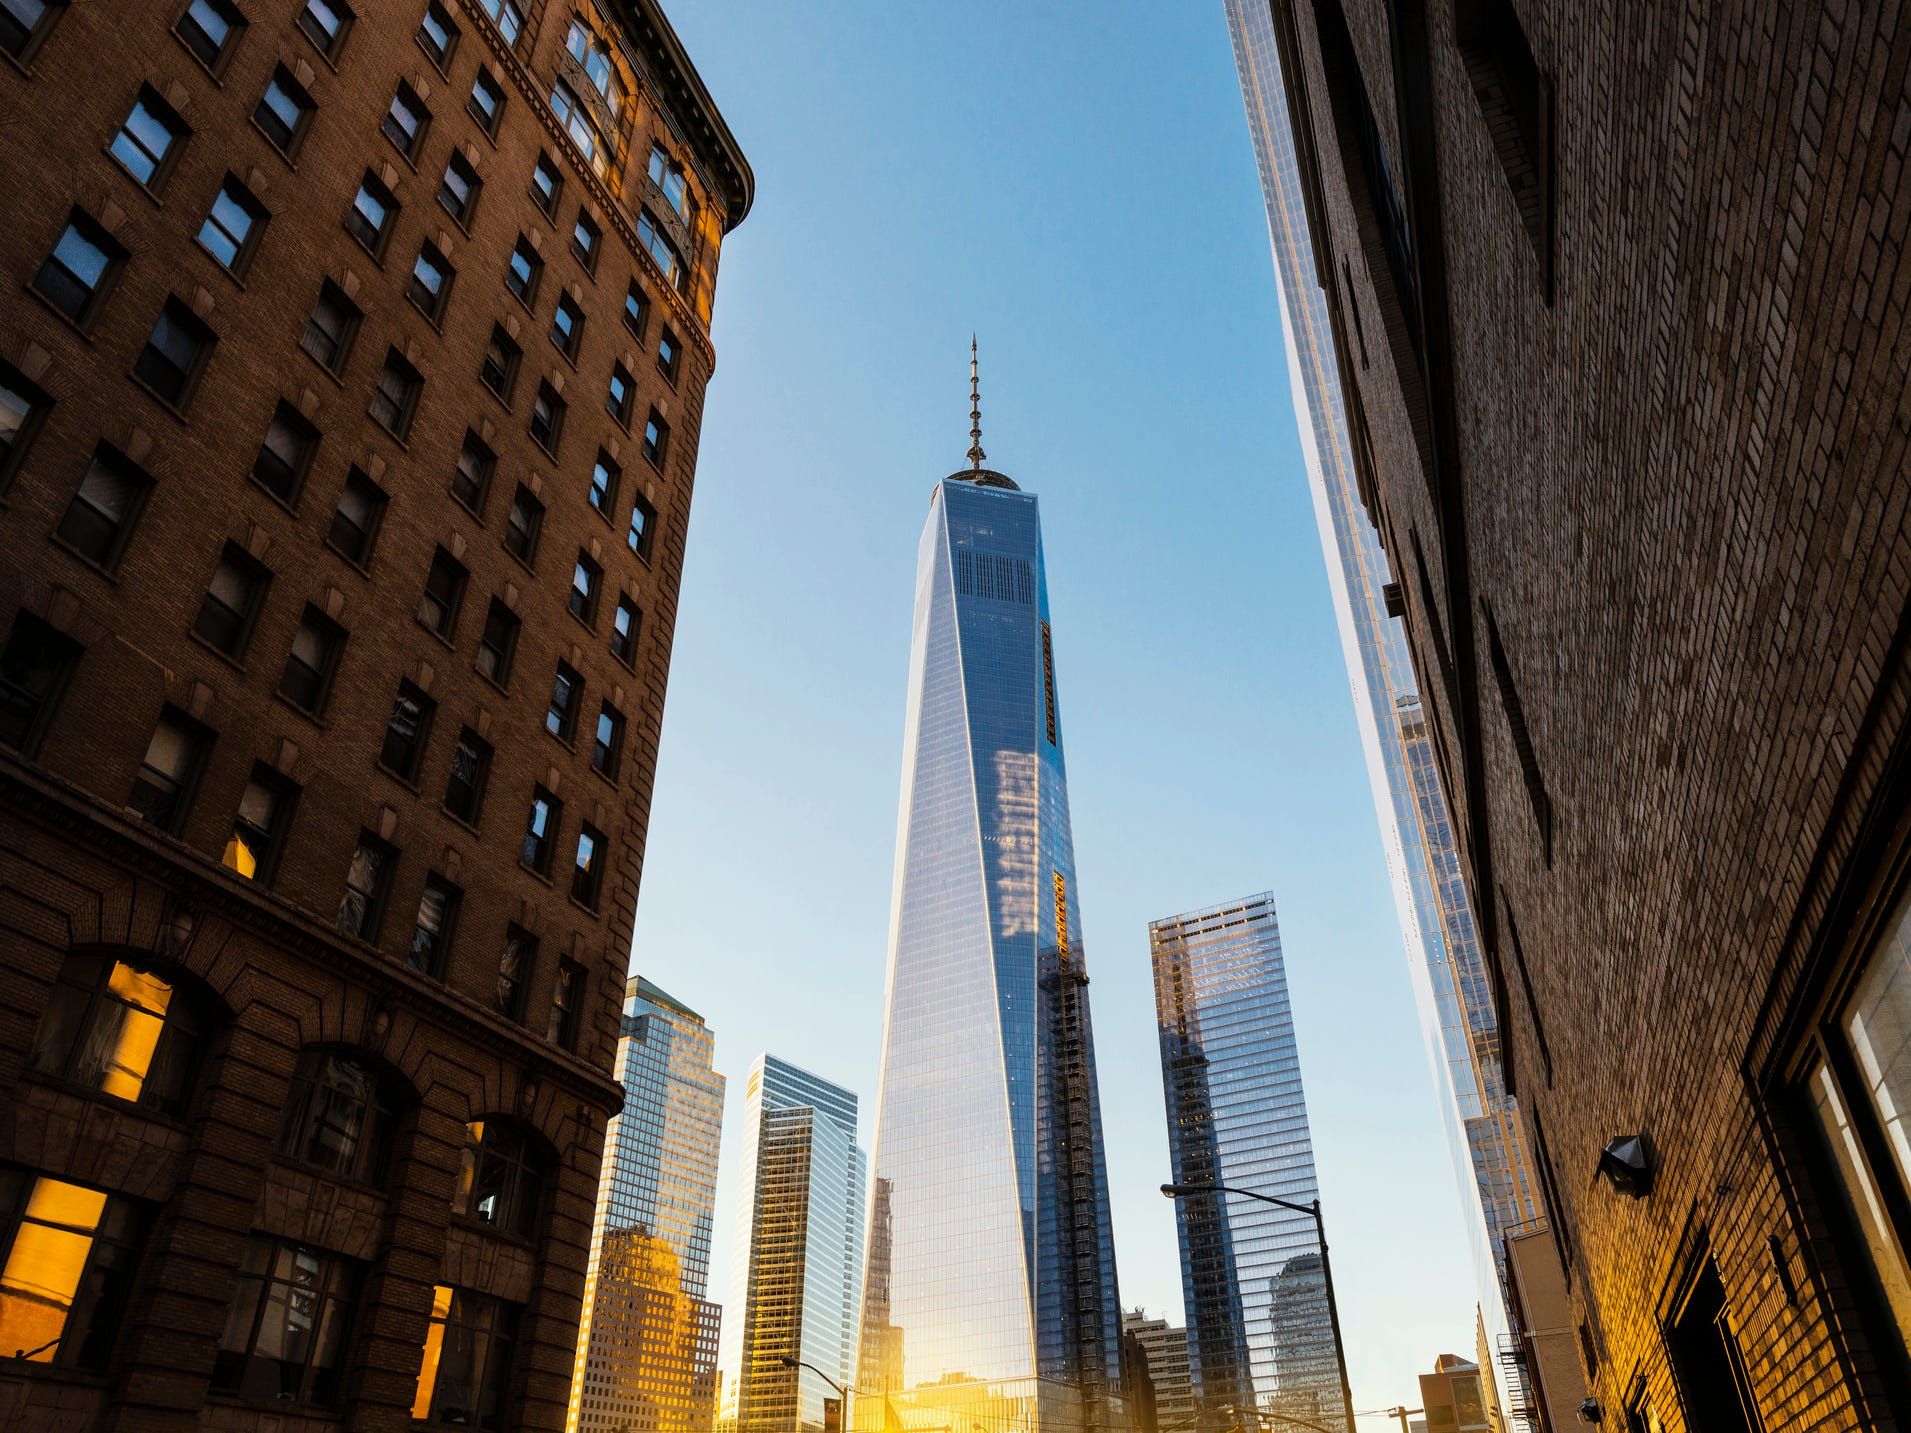 No. 25: One World Trade Center in New York City.